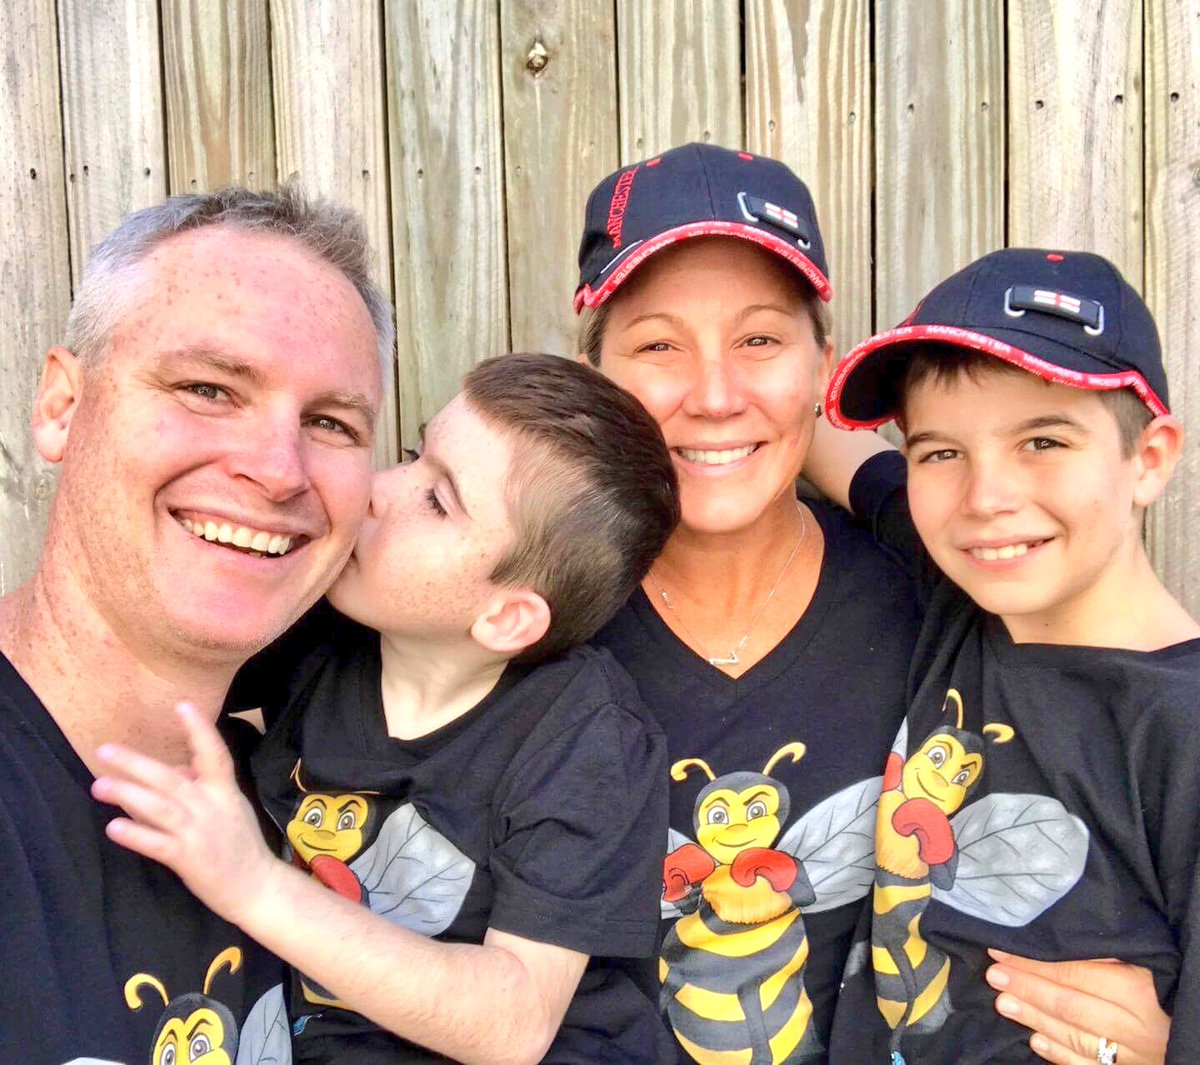 Manchester Bee  TShirts make it all the way to Australia  2 love #Manchester hats too ! Buy yours here ---&gt;  https://www. scattee.com/charity-bee-ts hirt &nbsp; …  #Bee<br>http://pic.twitter.com/eOVoGeyR2q